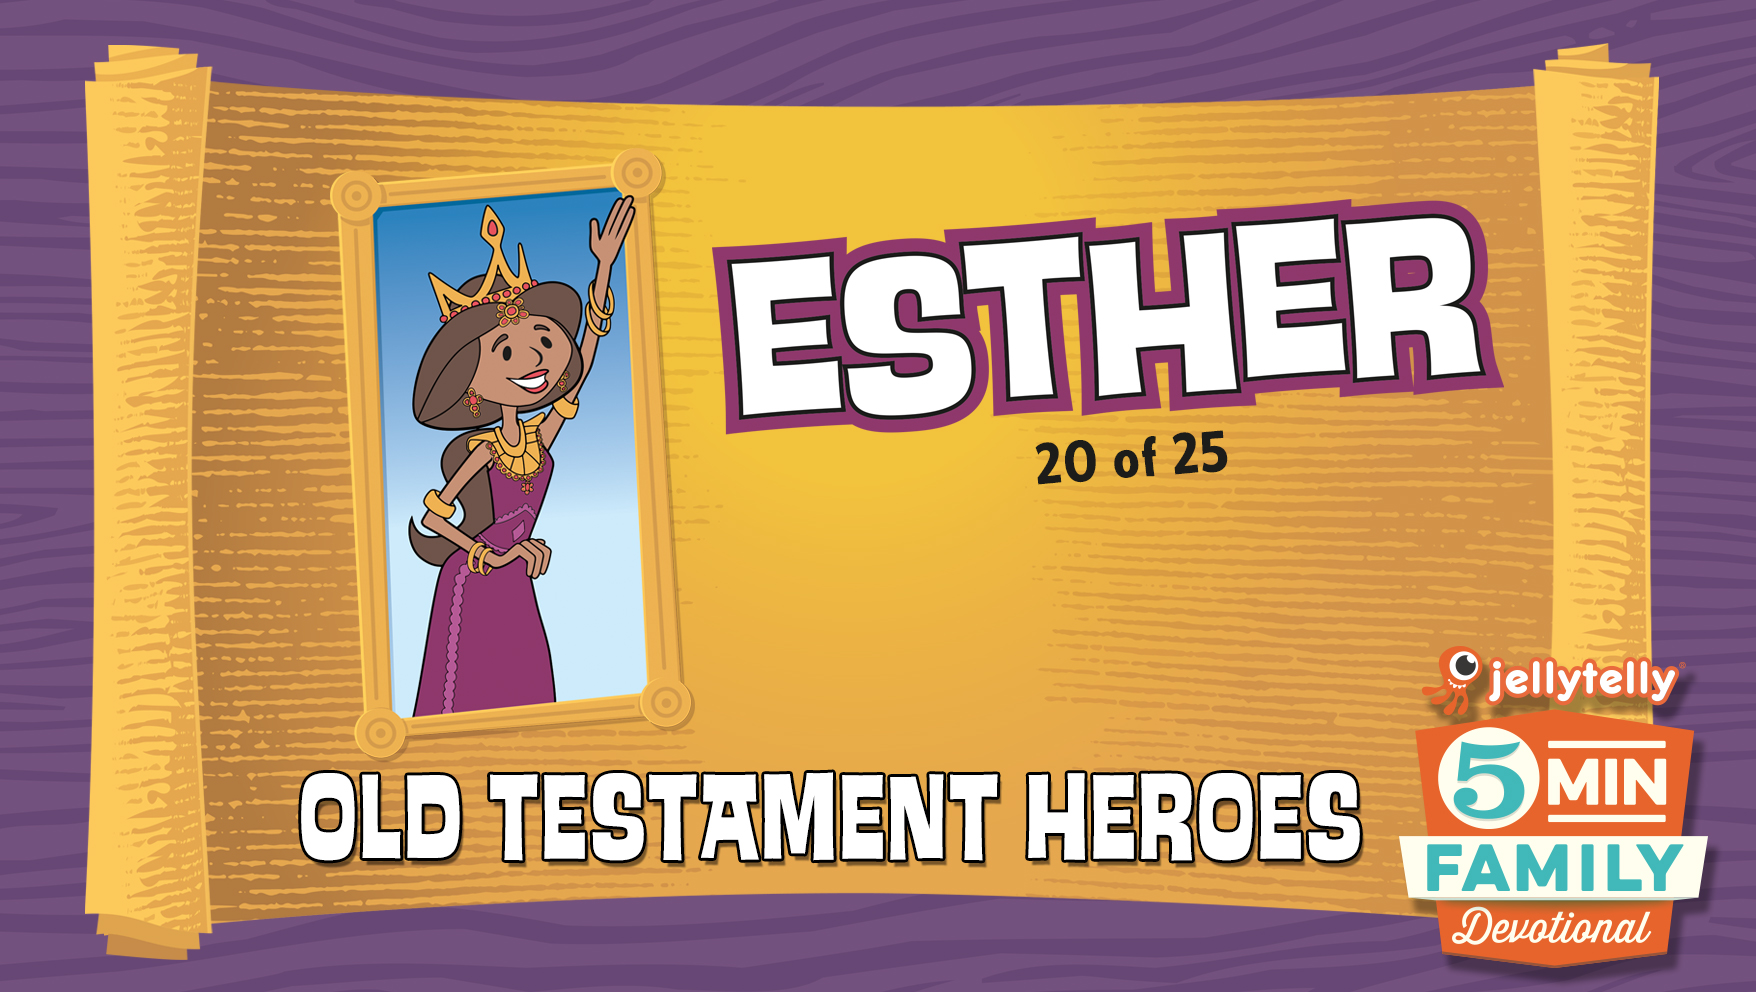 Esther: Old Testament Heroes - 5 Minute Family Devotional